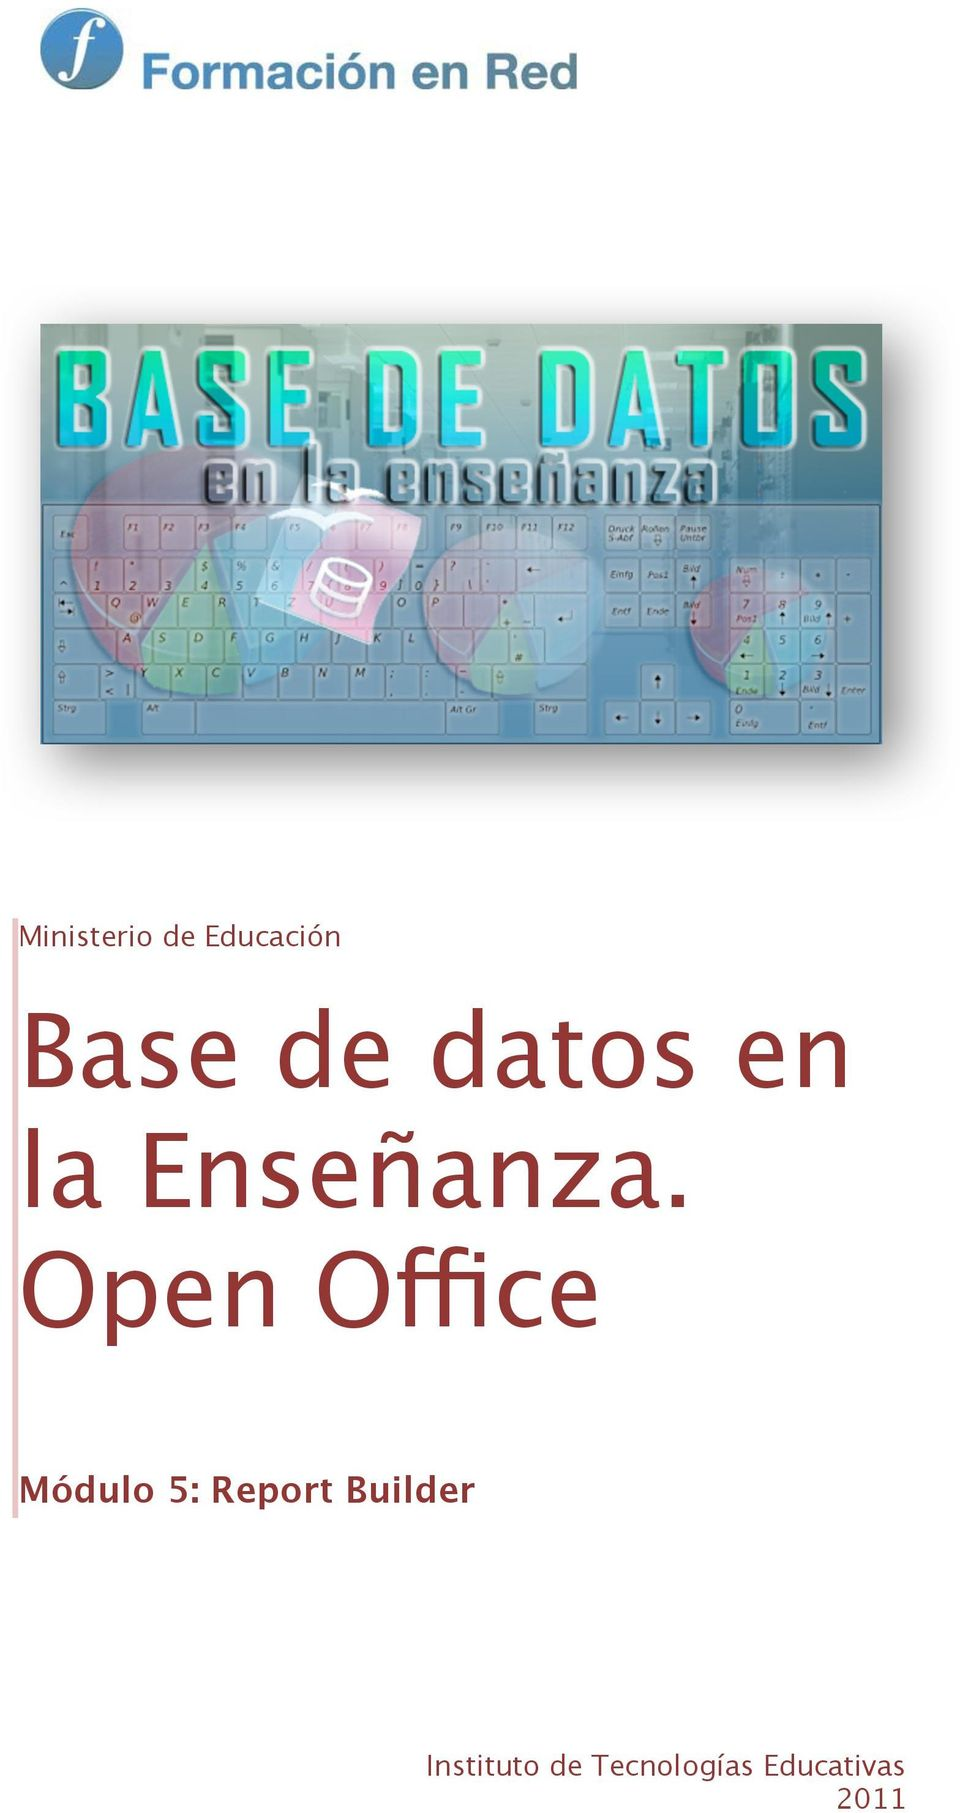 Open Office Módulo 5: Report